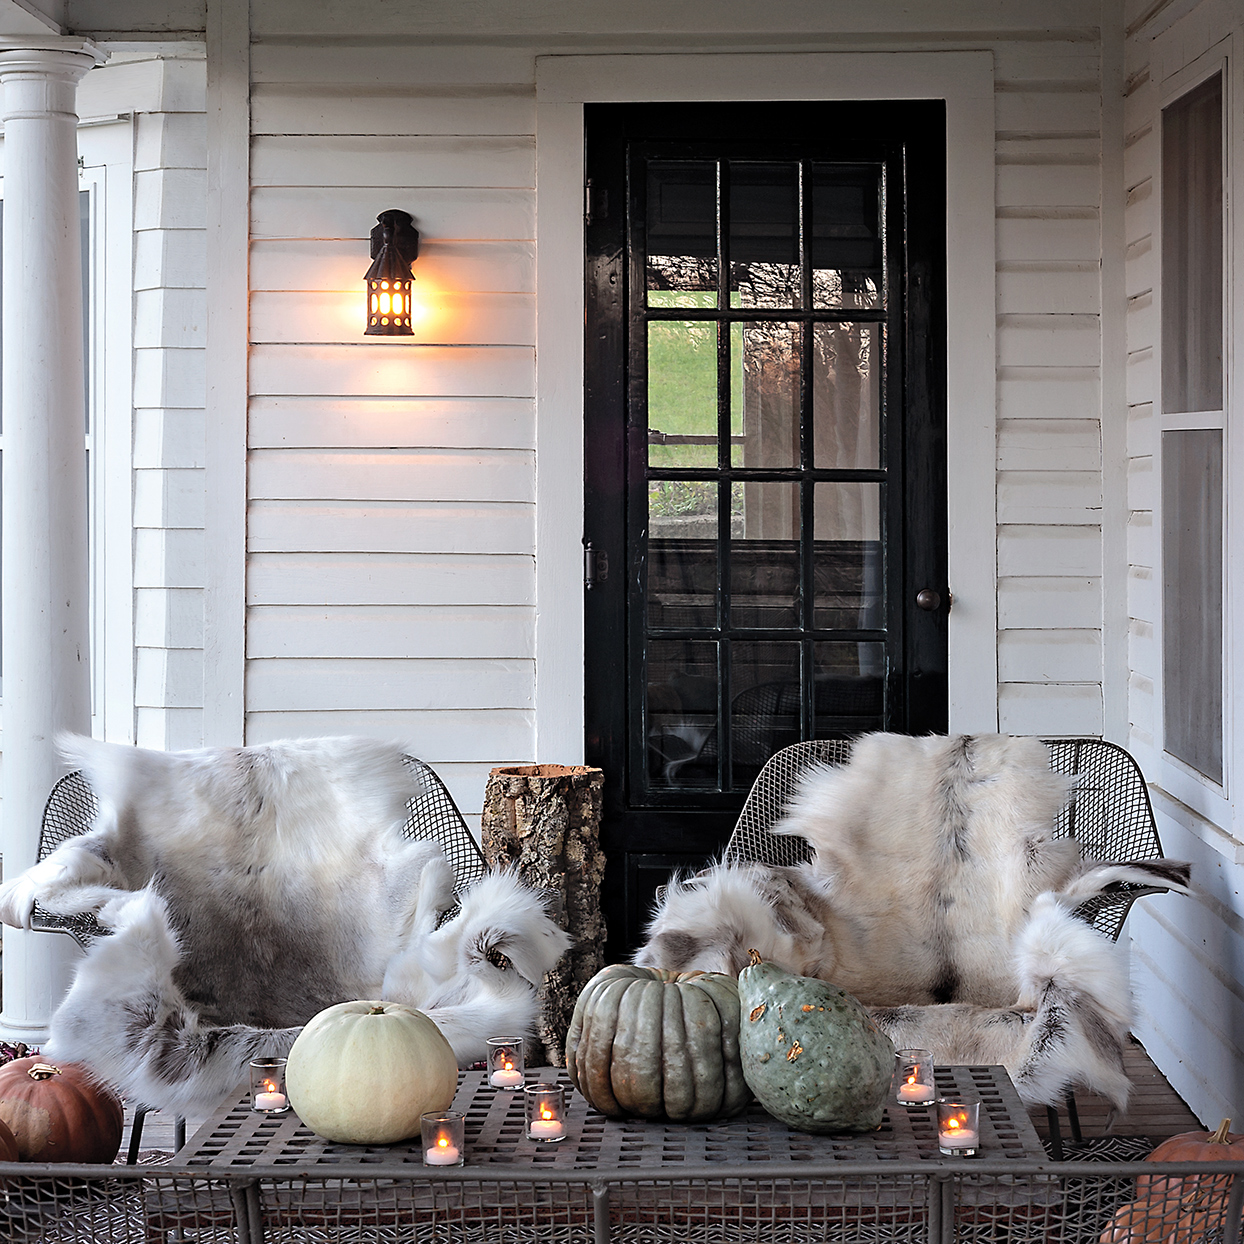 fur throws on wire chairs on front porch